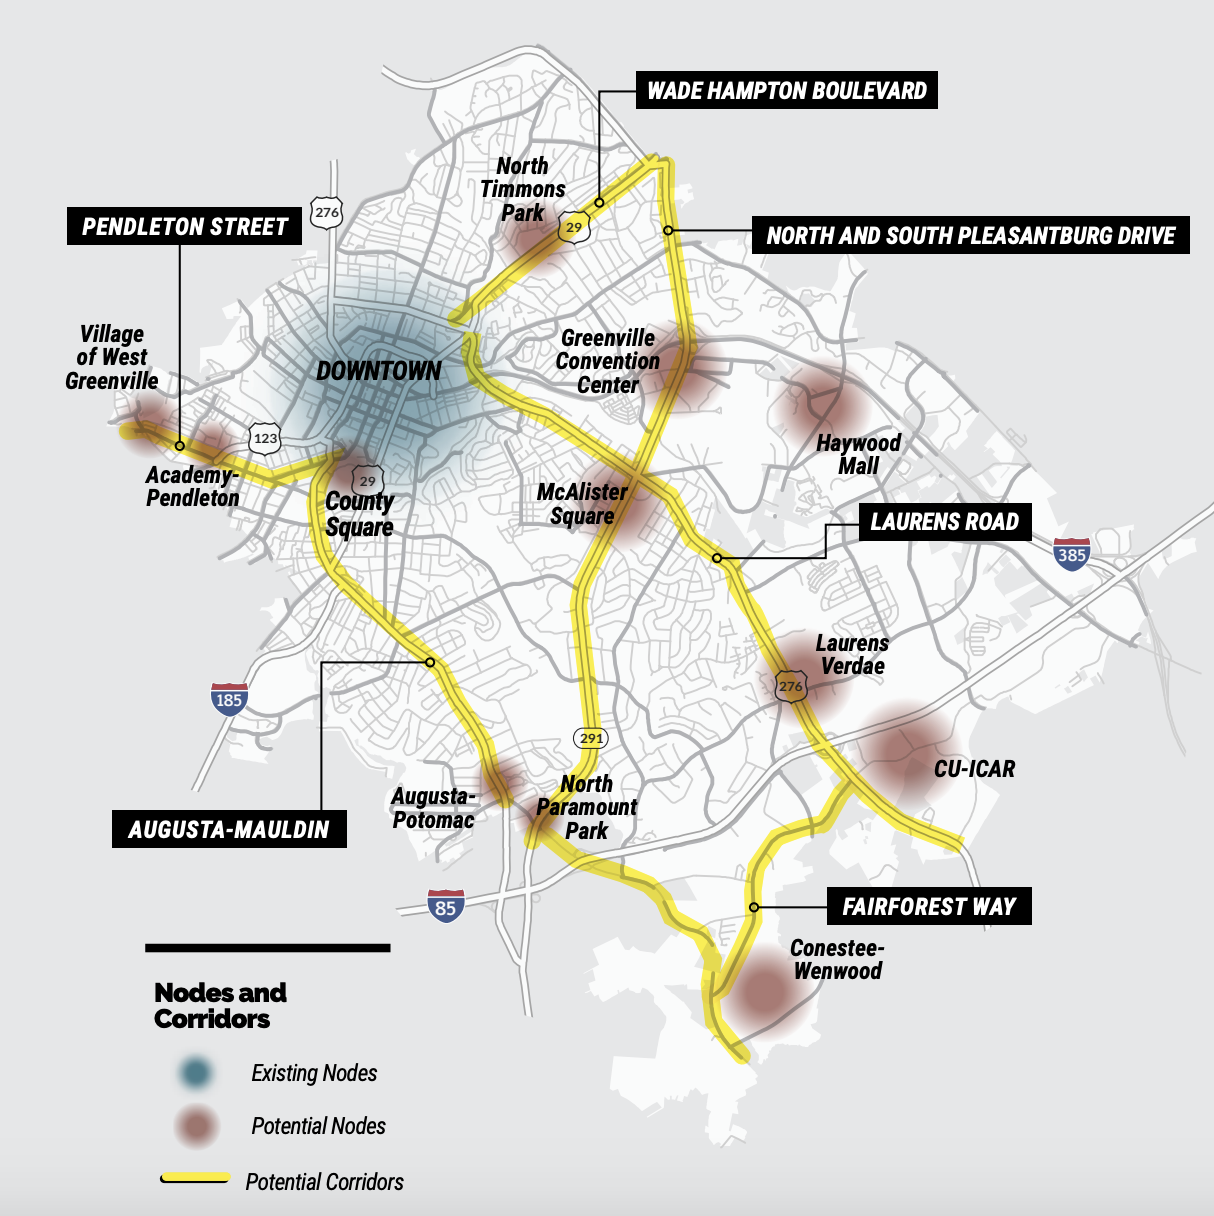 Node and corridor map from GVL2040 Comprehensive Plan